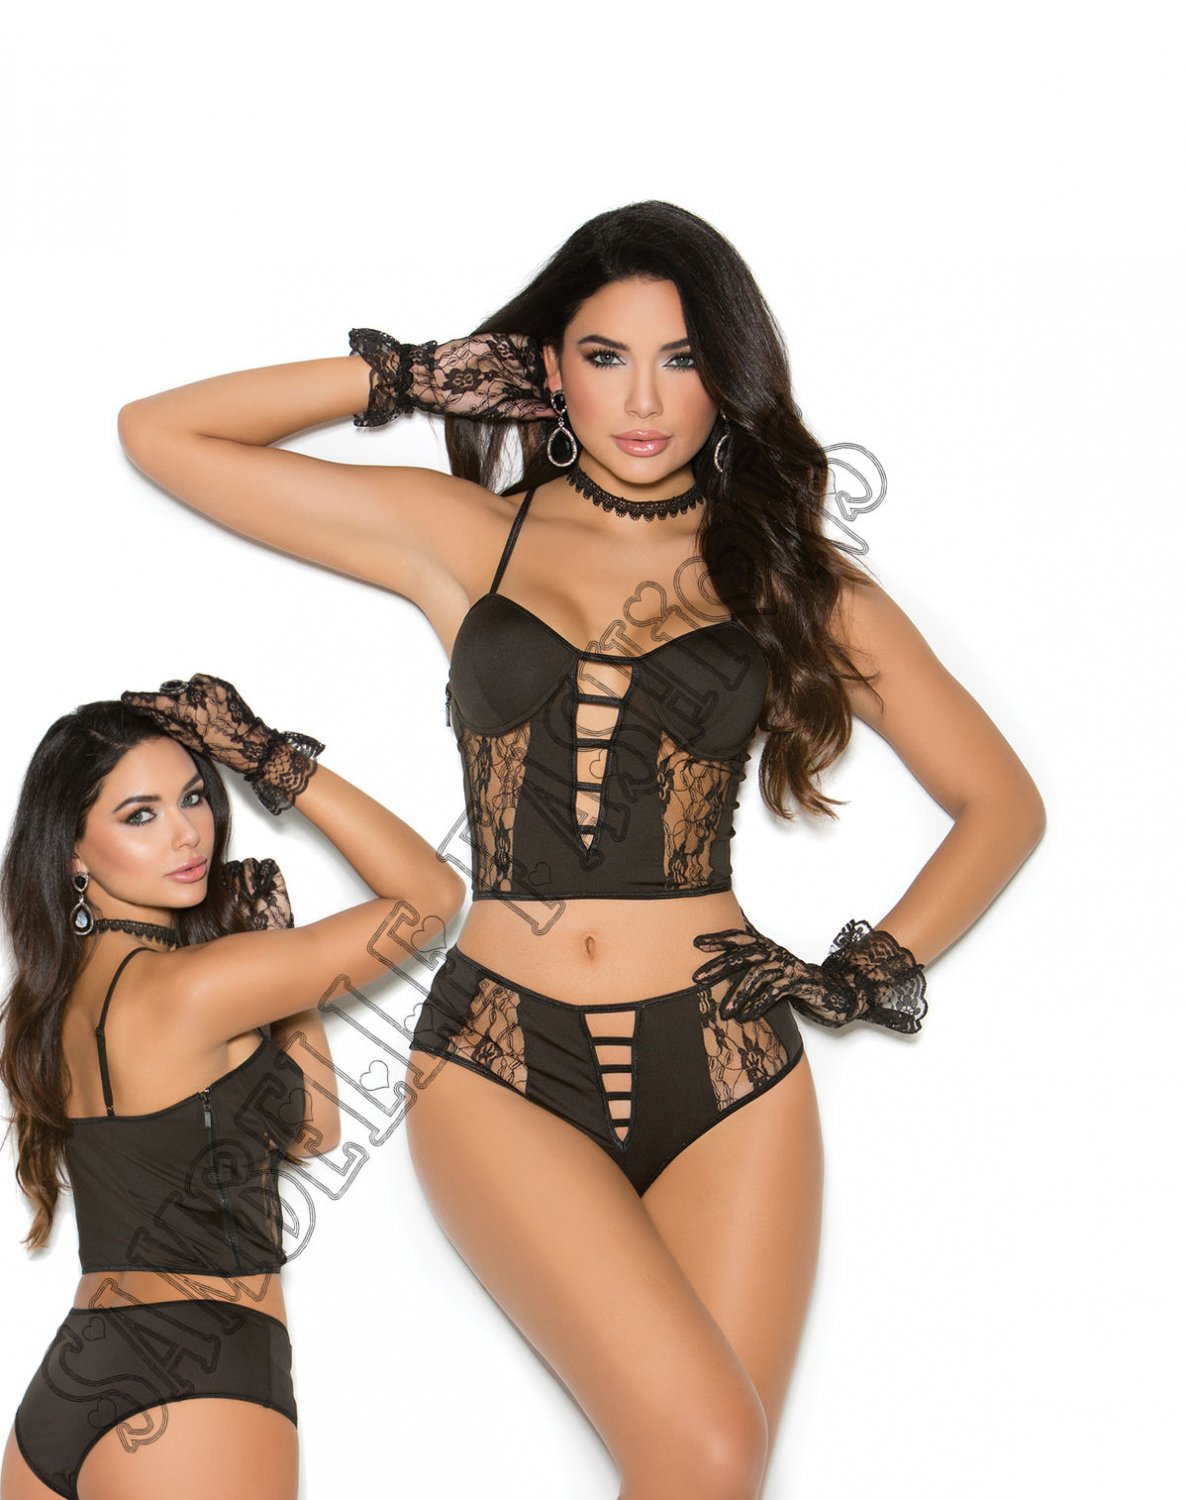 3pc Black Underwire Bralette w/ Lace Inserts, Lace Gloves & Matching Booty Shorts  - X-Large